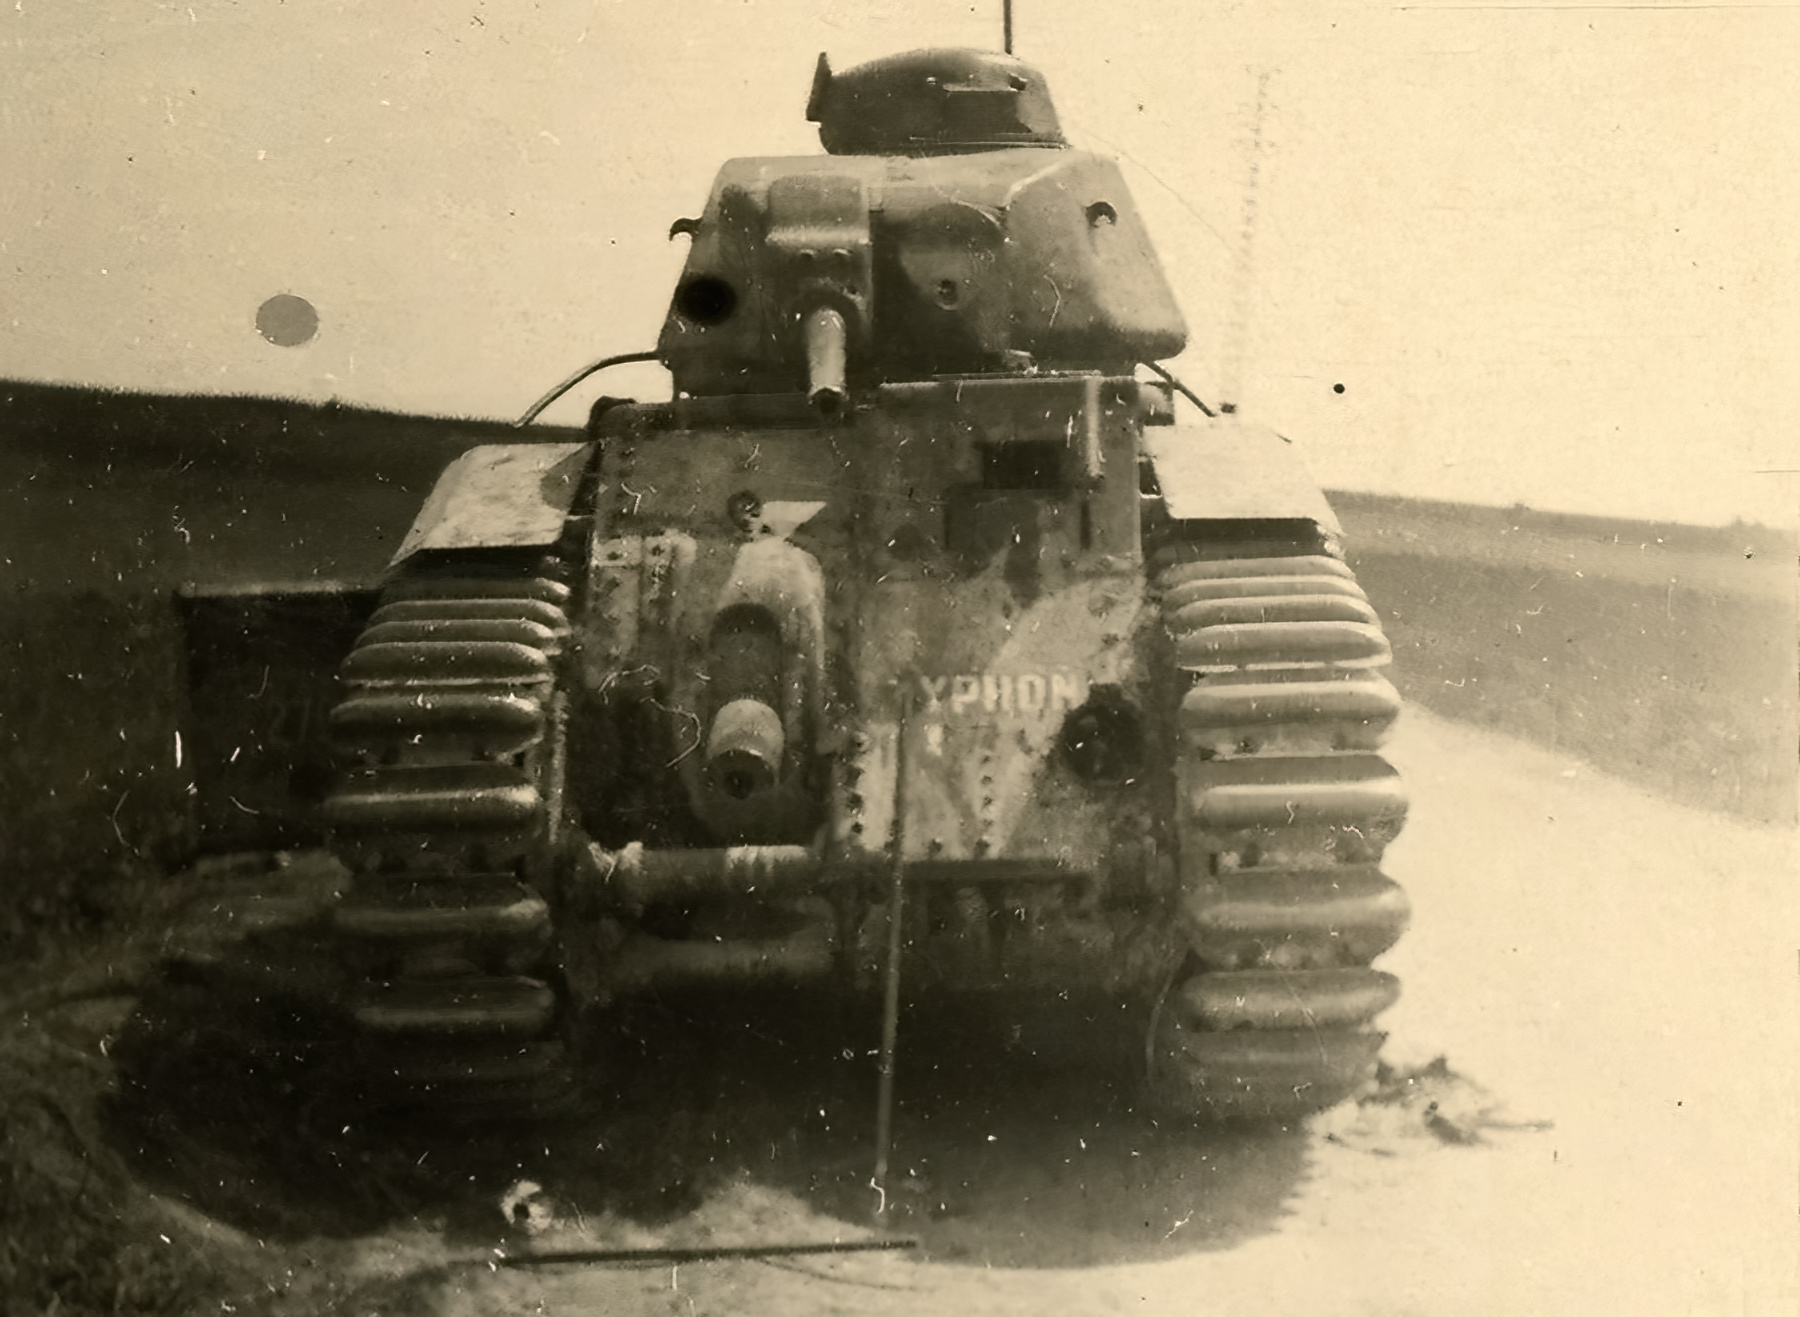 French Army Renault Char B1 named Yphon abandoned during the battle of France 1940 ebay 01